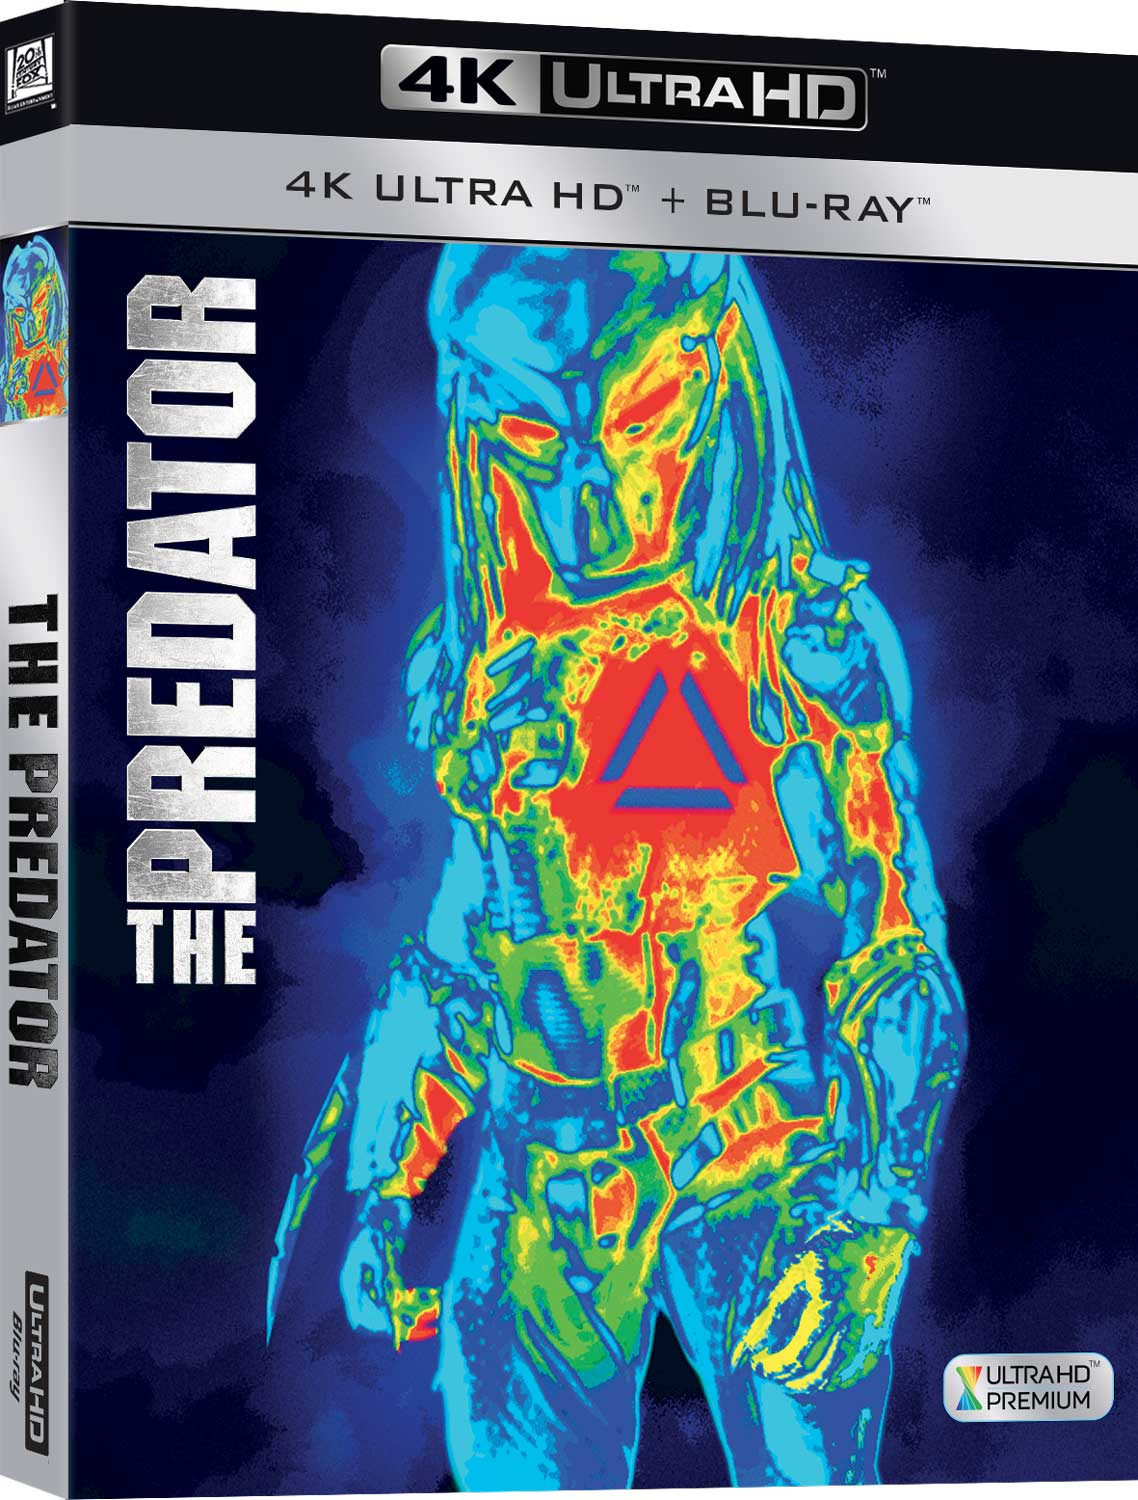 THE PREDATOR (2018) (4K ULTRA HD+BLU-RAY)